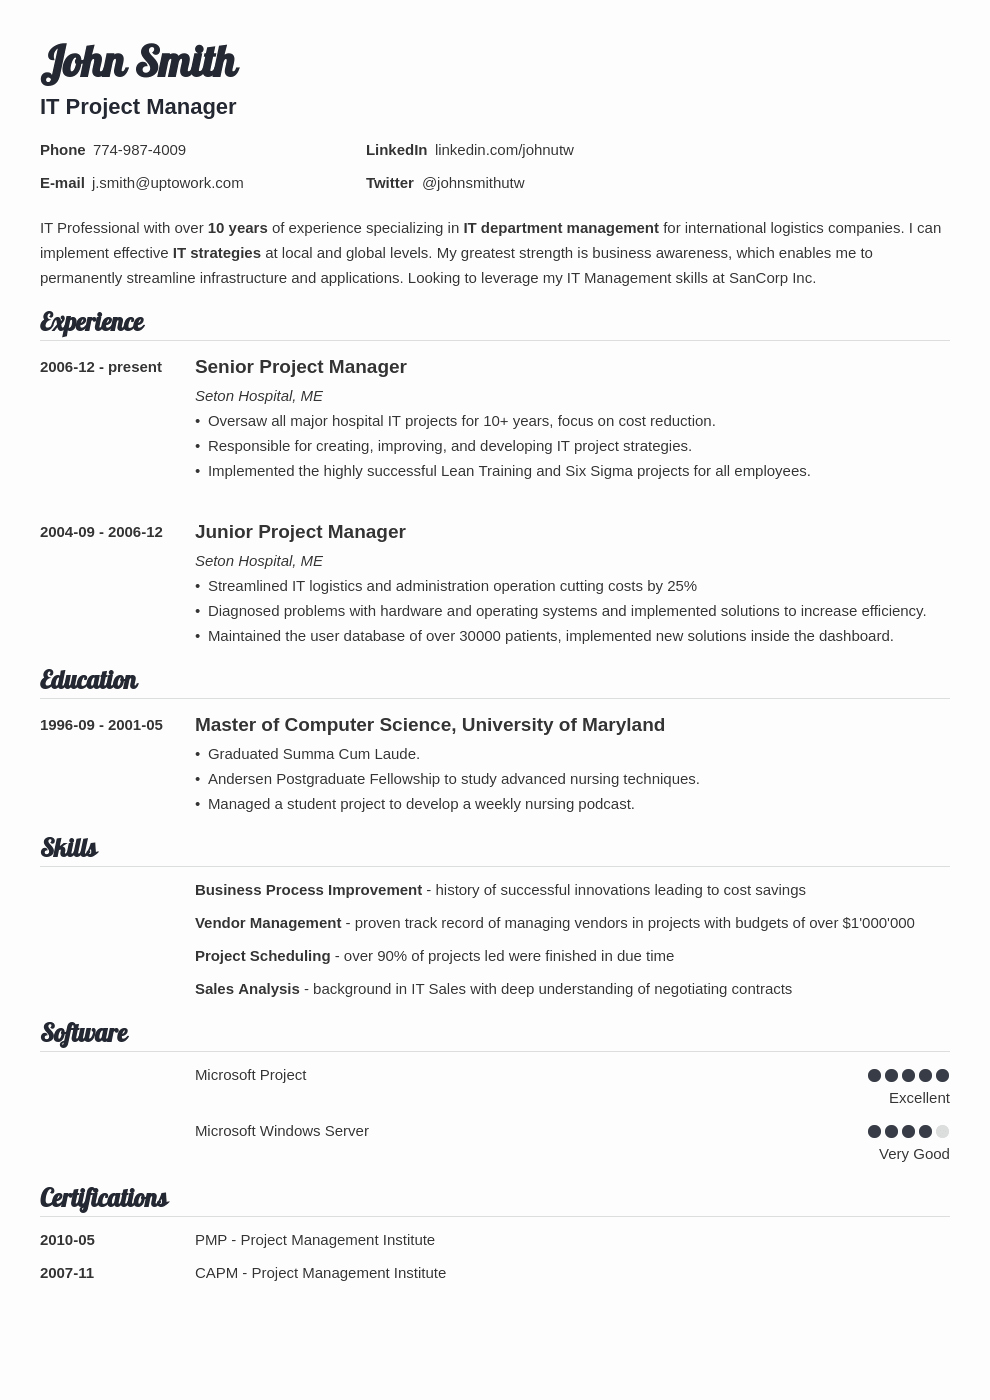 Simple Professional Resume Template Beautiful 20 Resume Templates [download] Create Your Resume In 5